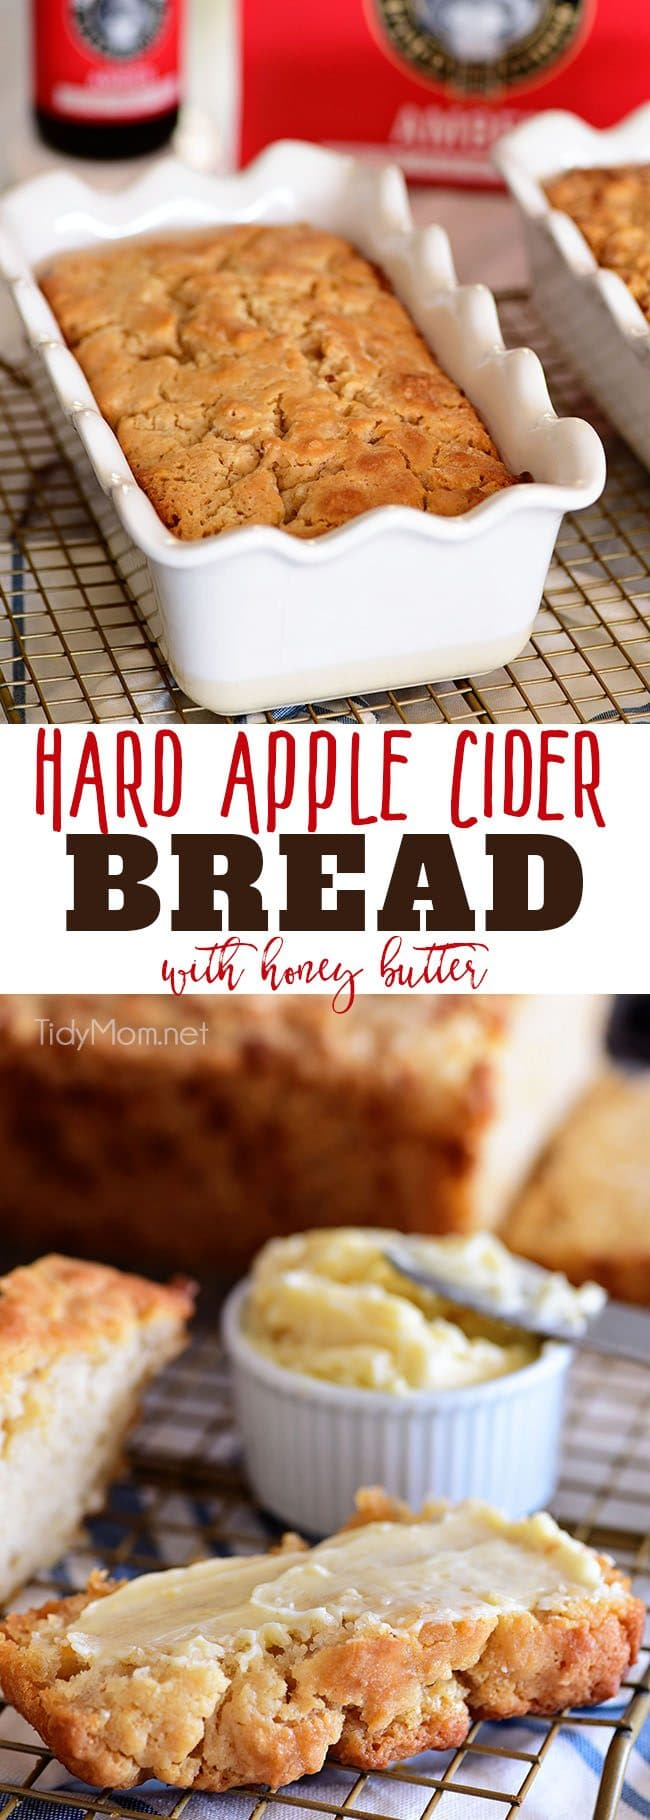 If you enjoy beer bread, you need to try this Hard Apple Cider Bread for fall!! It's super simple to make. The top buttery crust layer is thick and crunchy, making it the perfect companion to soups, dips, honey butter and more! Print the full recipe at TidyMom.net